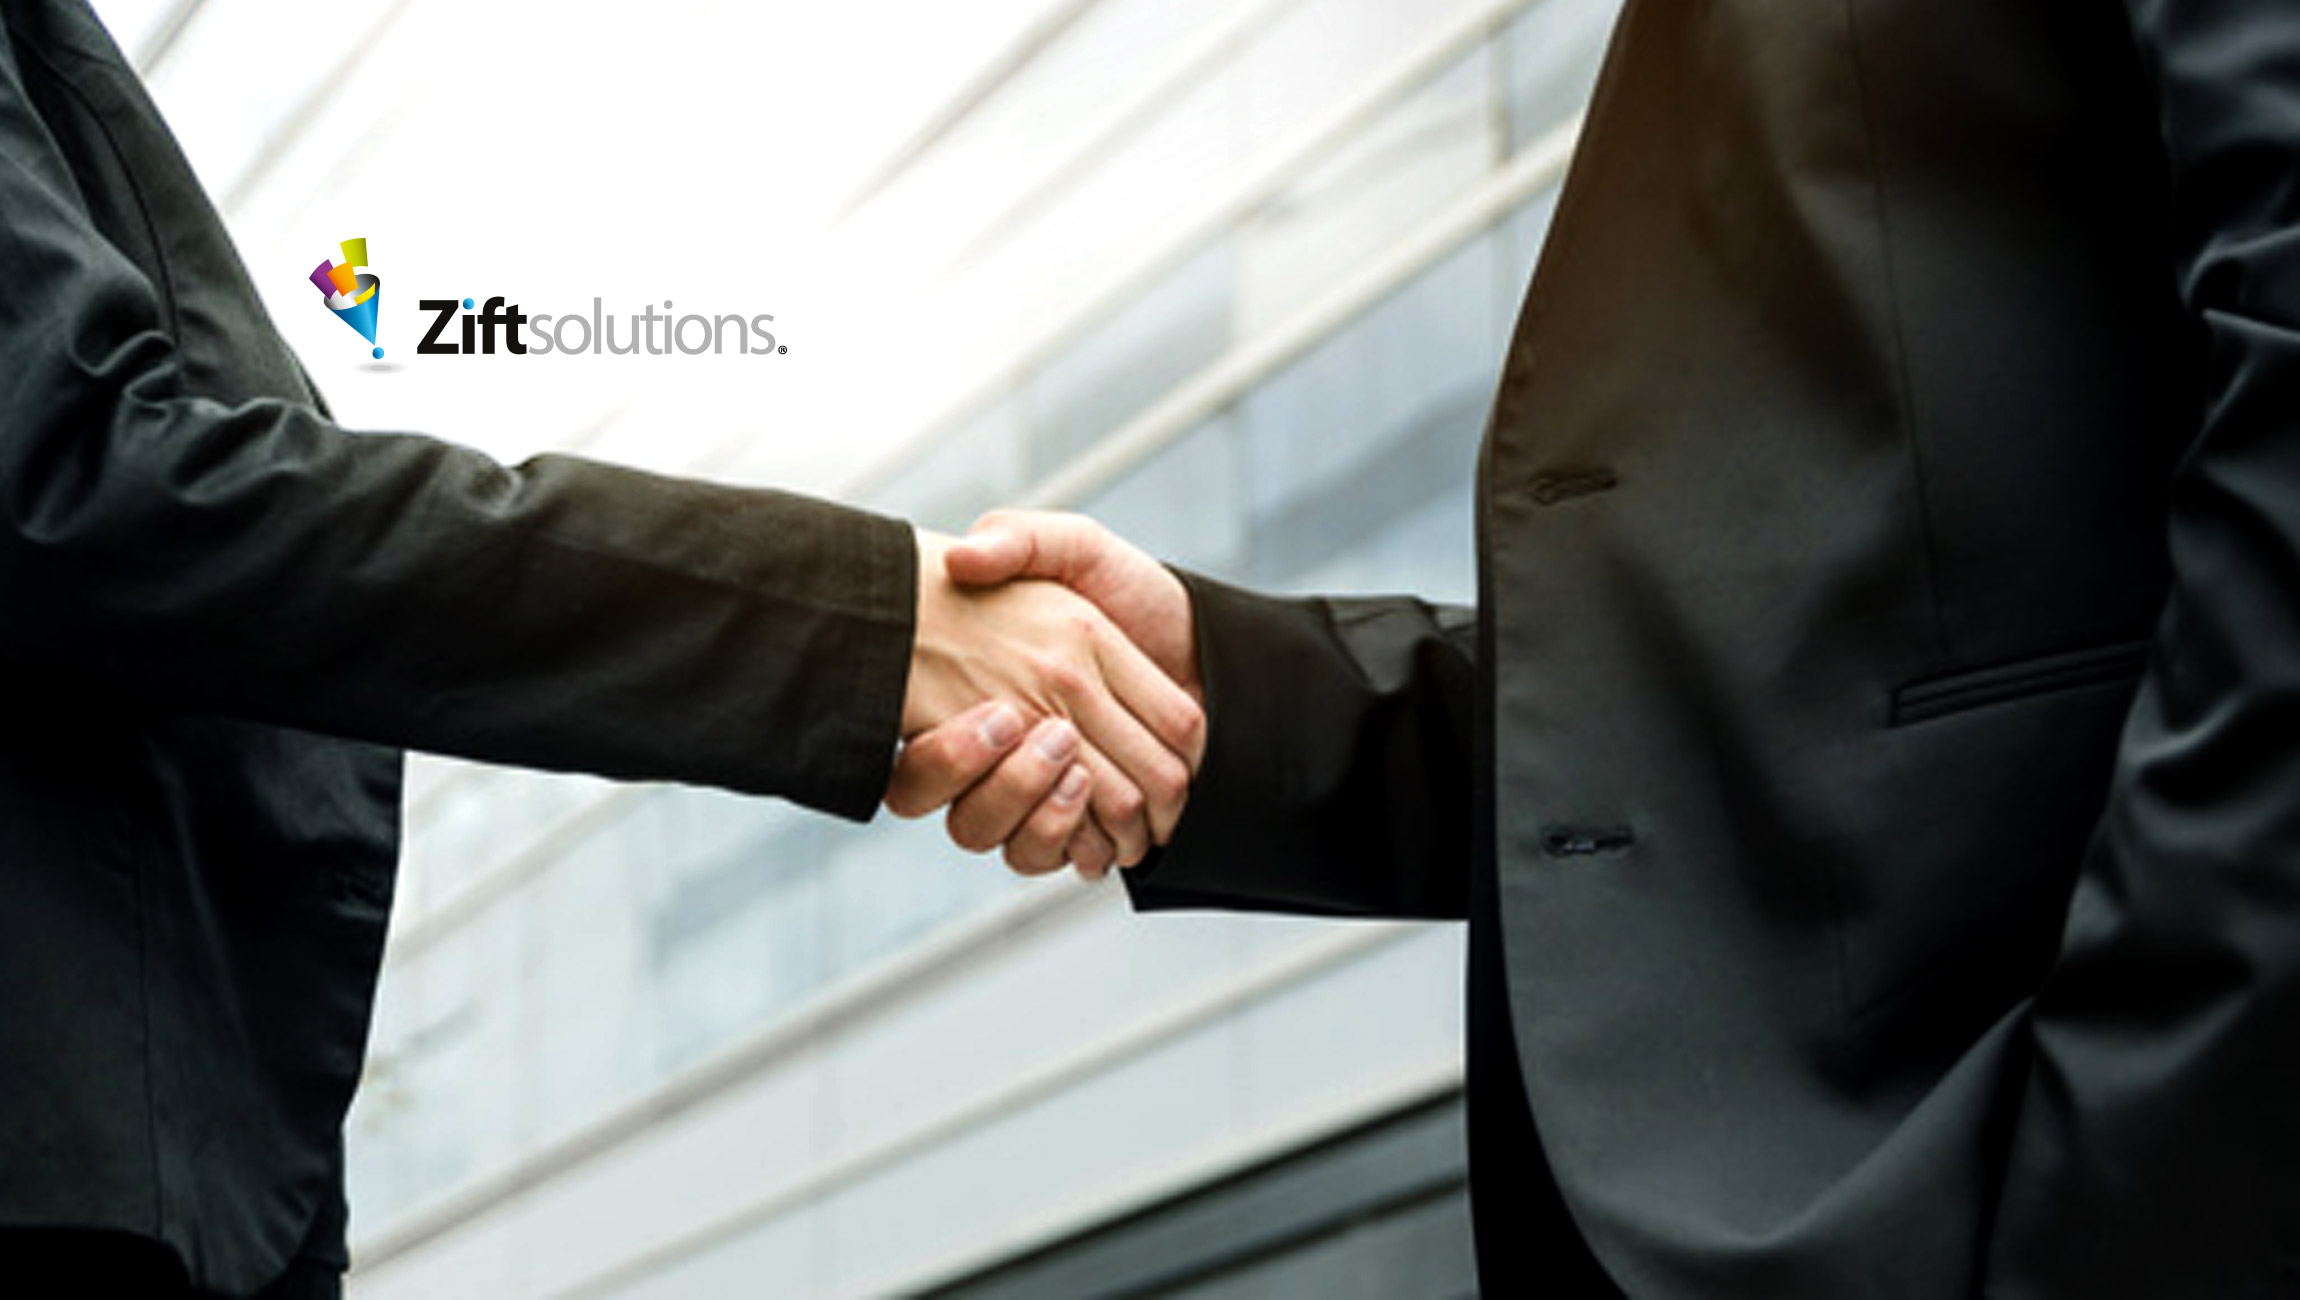 Zift Solutions Announces a Strategic Partnership with Vistex to Simplify Channel Incentive Management